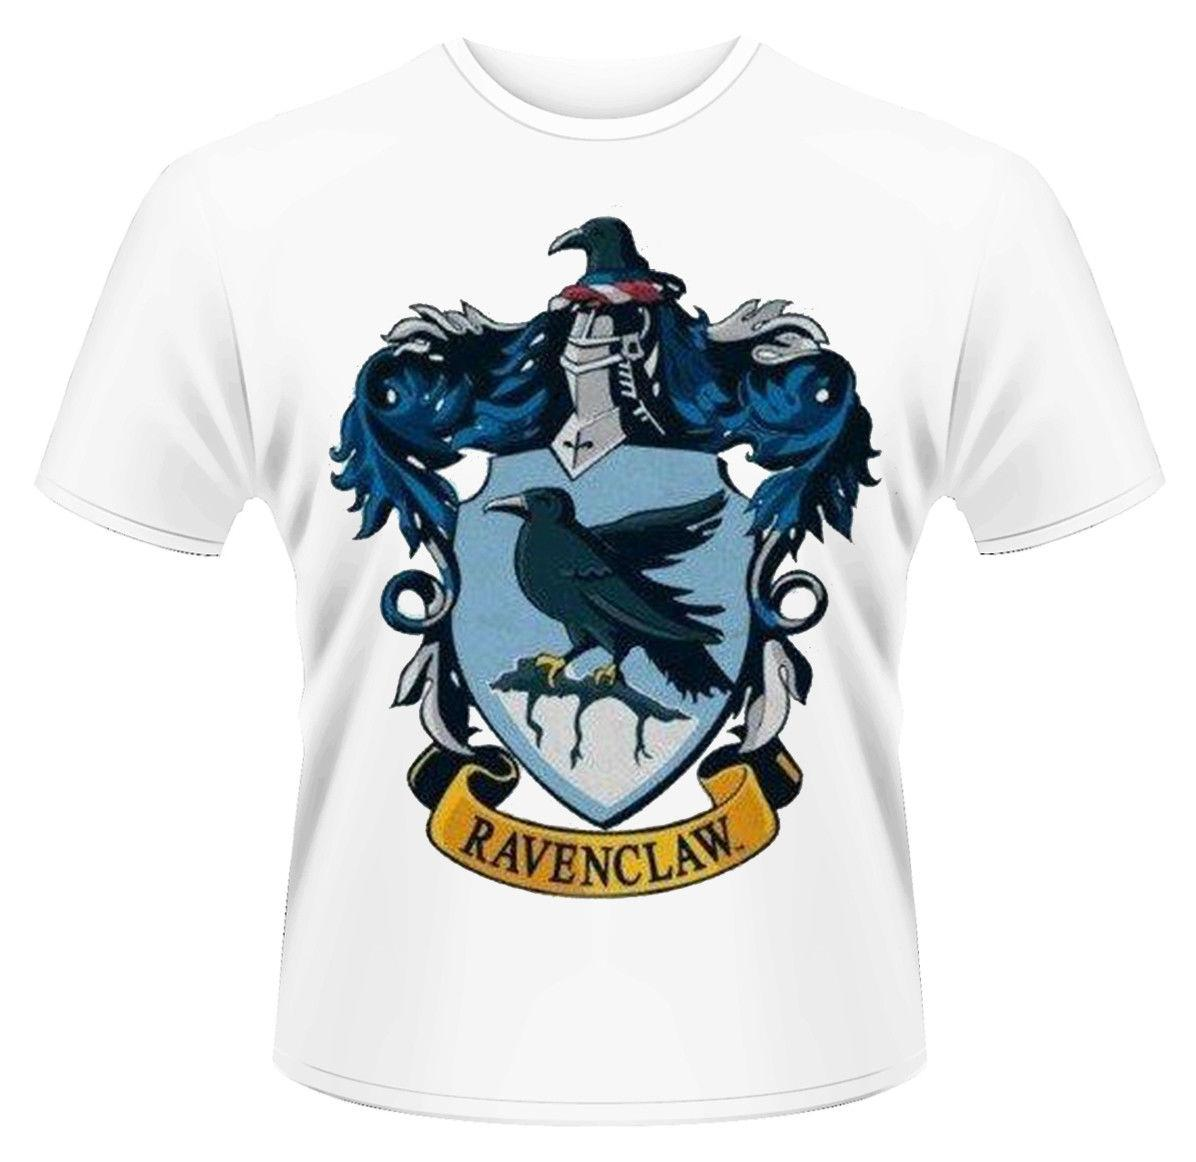 Harry Potter Ravenclaw T Shirt Nuovo E Originale Online Shopping Tee Shirts Crazy For Men From Spreadshirt 1156